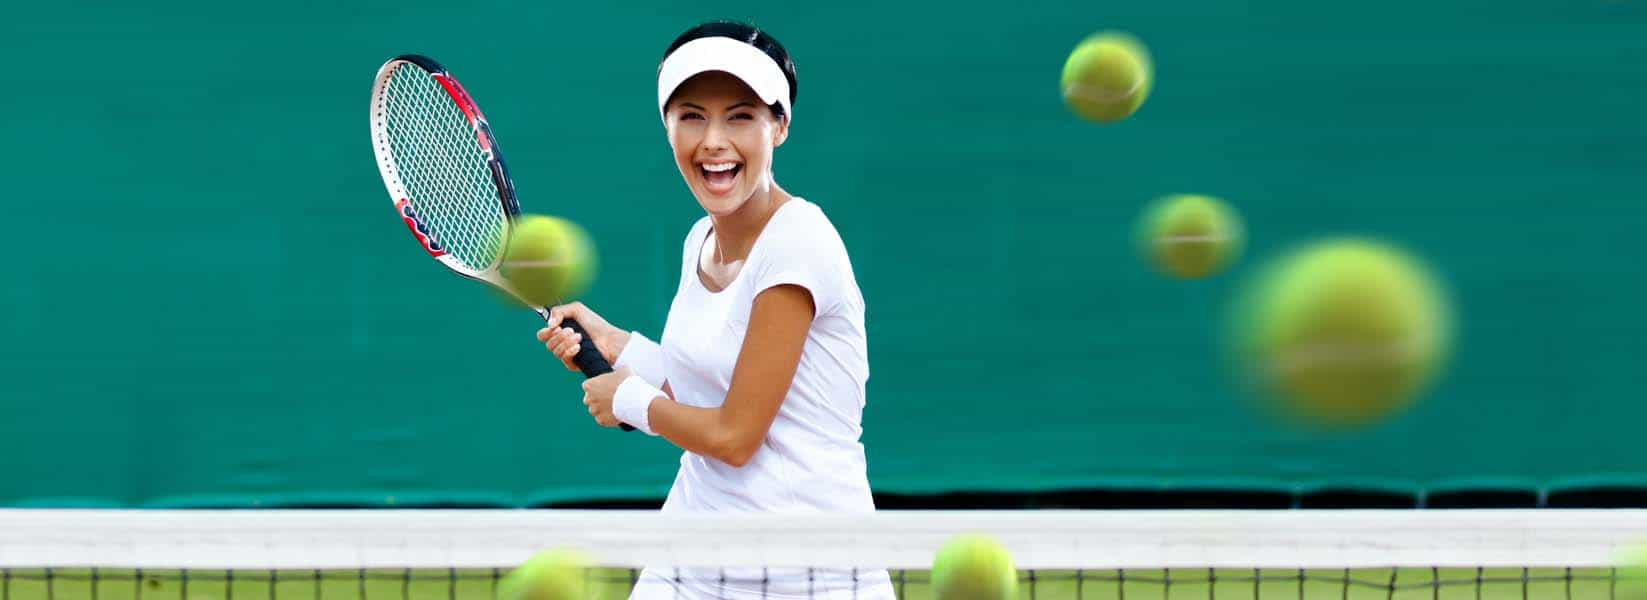 Best Tennis Shoes For Women 2018 – Buying Guide and Reviews